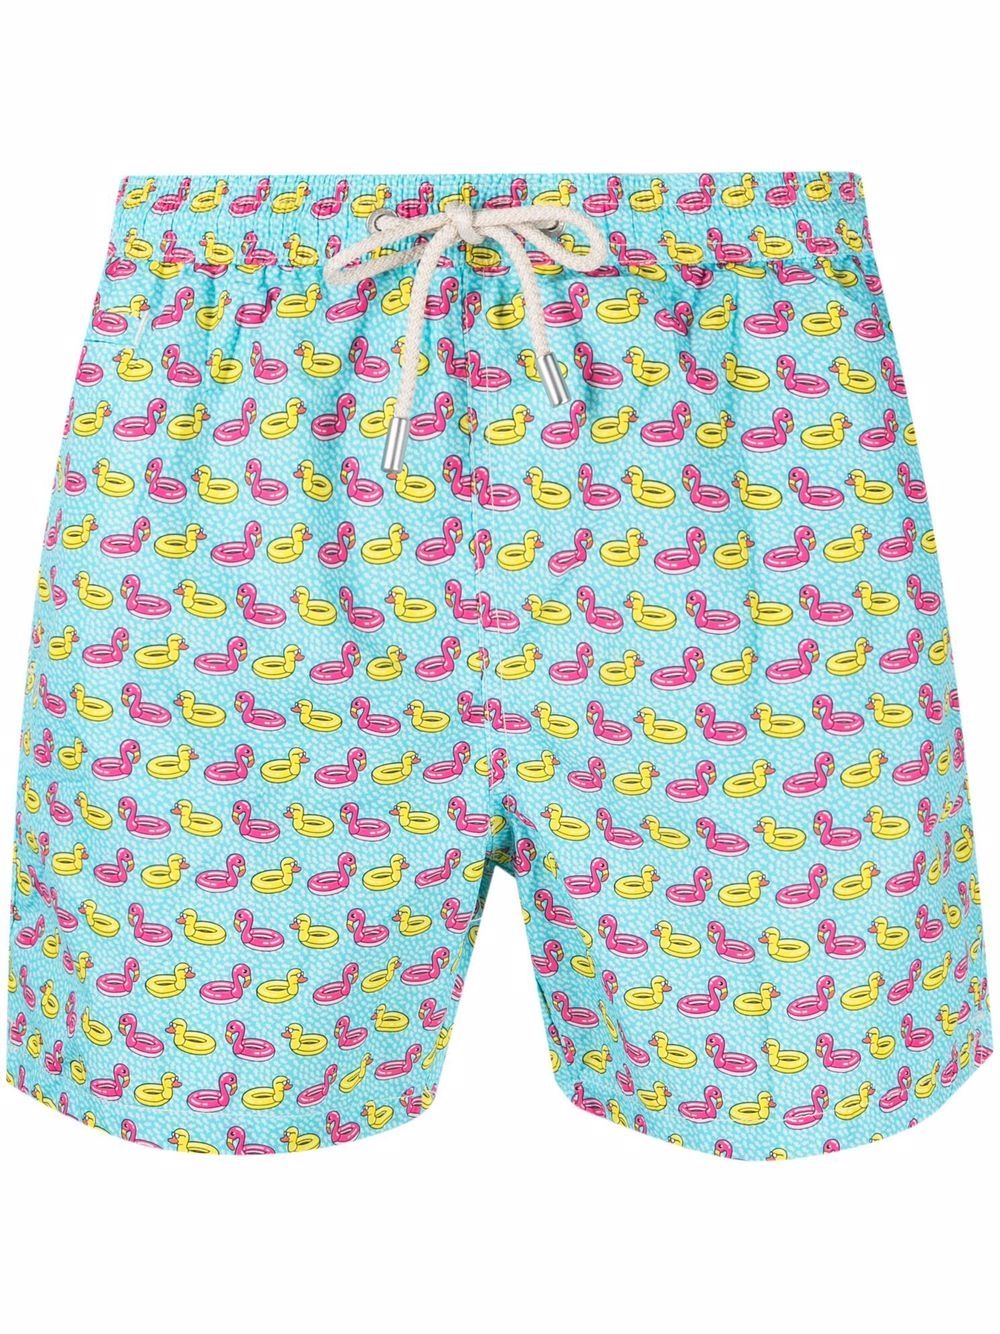 Turquoise-blue,pink and yellow stretch-recycled polyester swim shorts  MC2      LIGHTING MICRO FANTASY-DUCKY FLAMINGO56